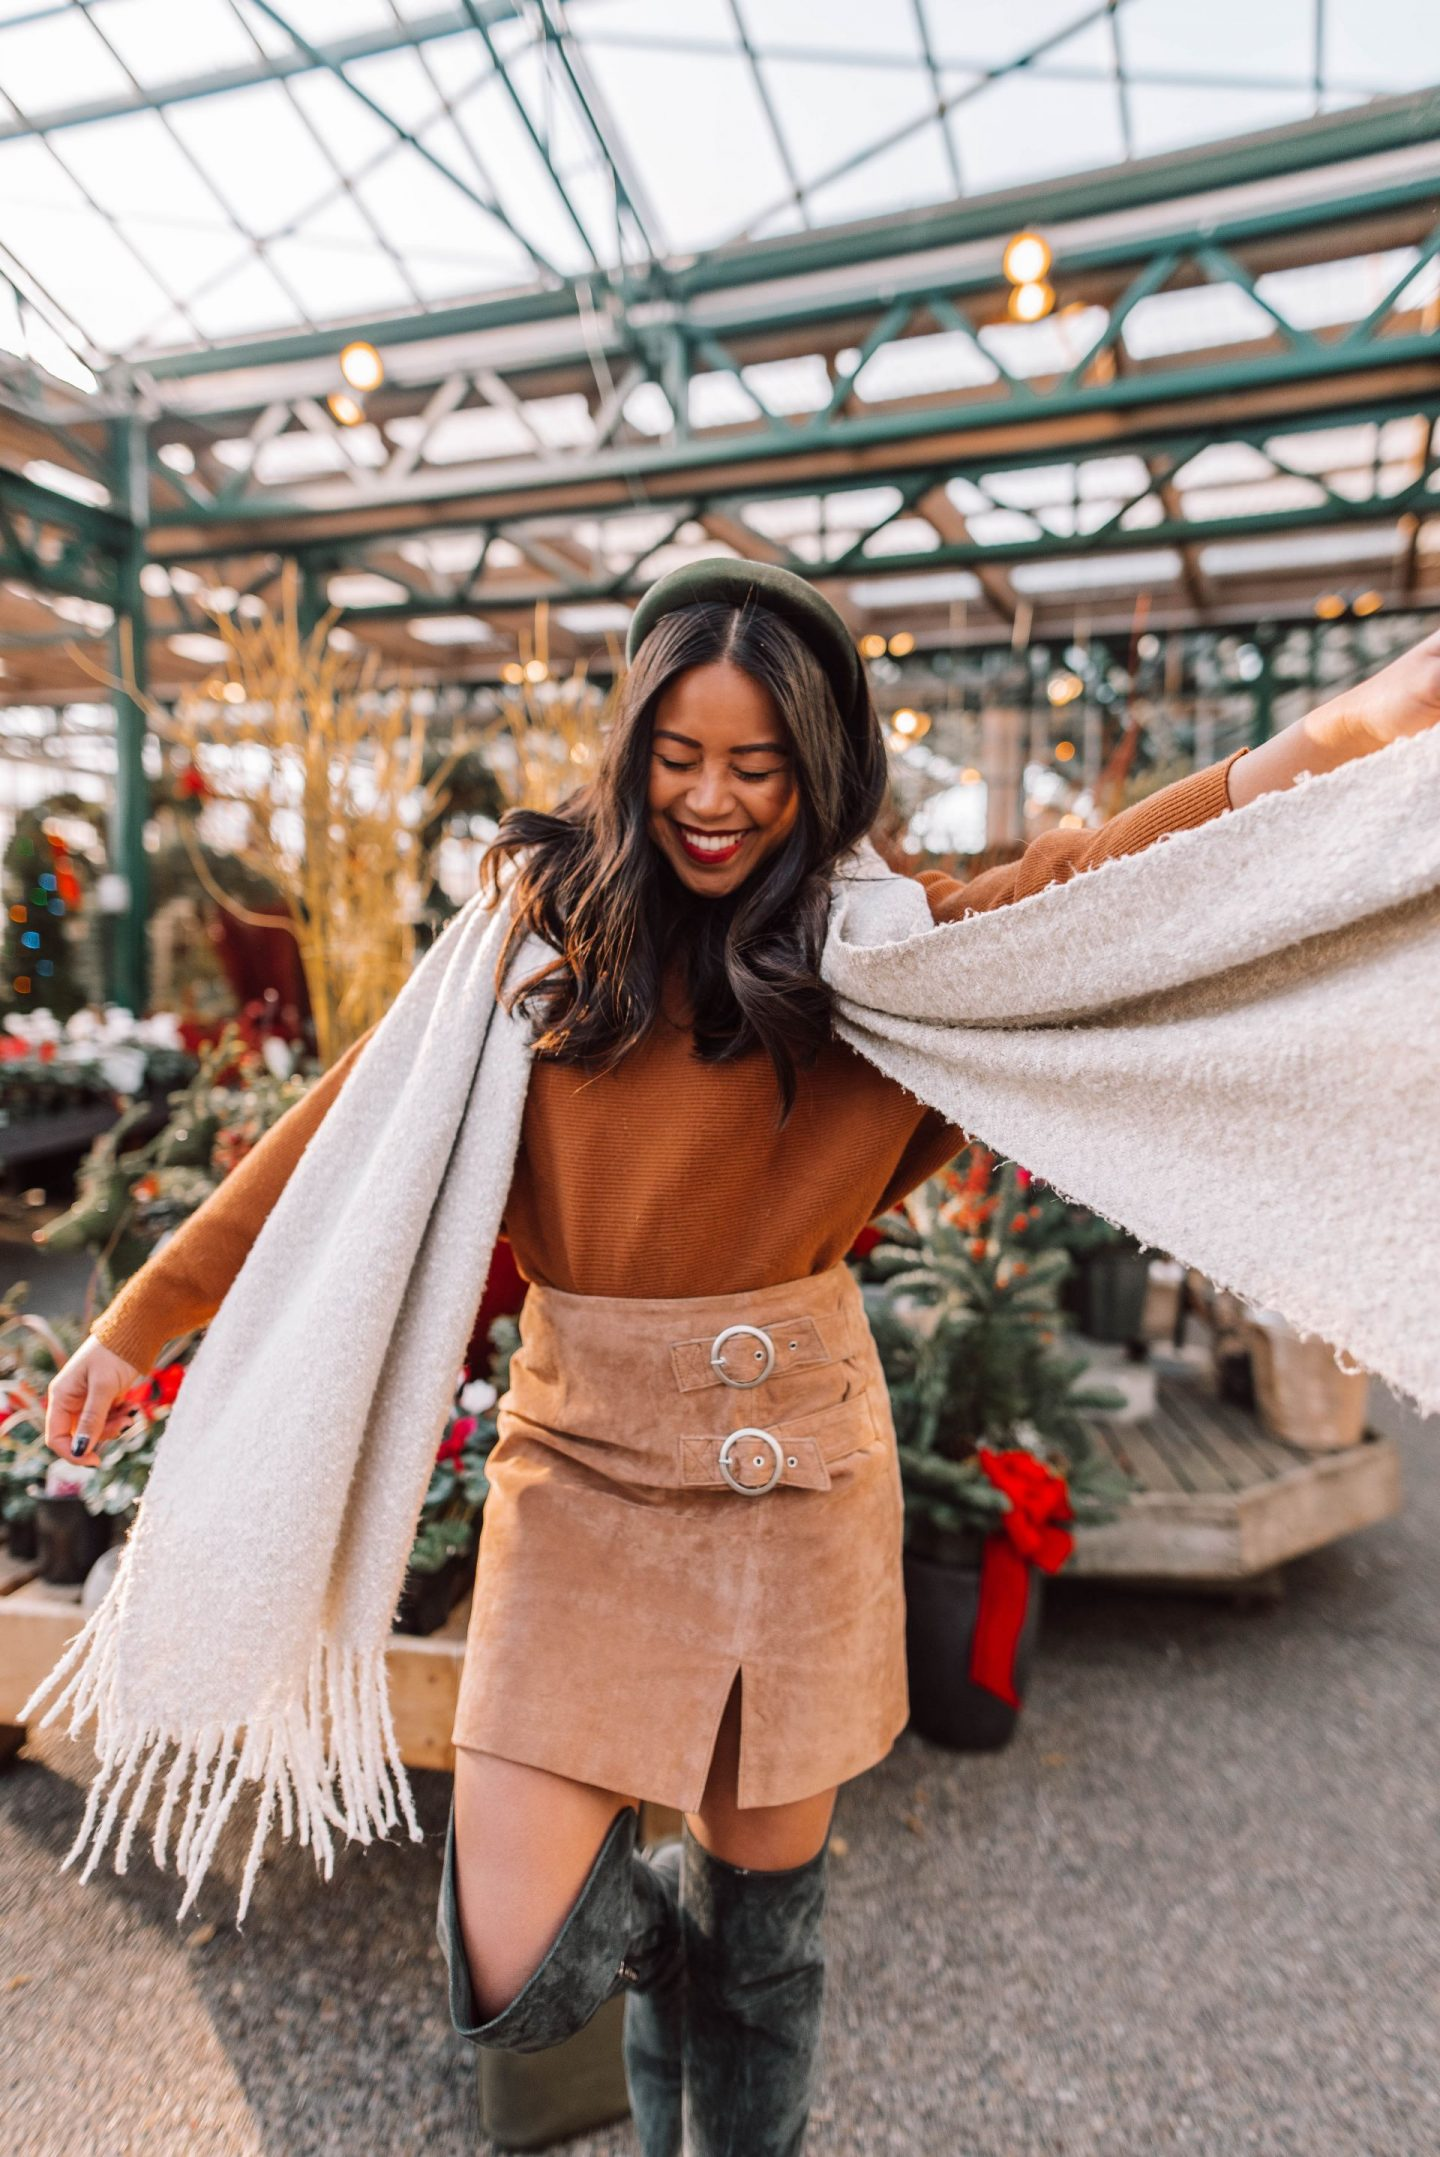 Winter outfits cold – winter outfits casual - winter outfits for school – december outfits winter – december outfits winter cold weather – cold weather outfits – cold weather outfits winter – winter style 2019 – winter style 2019 women casual